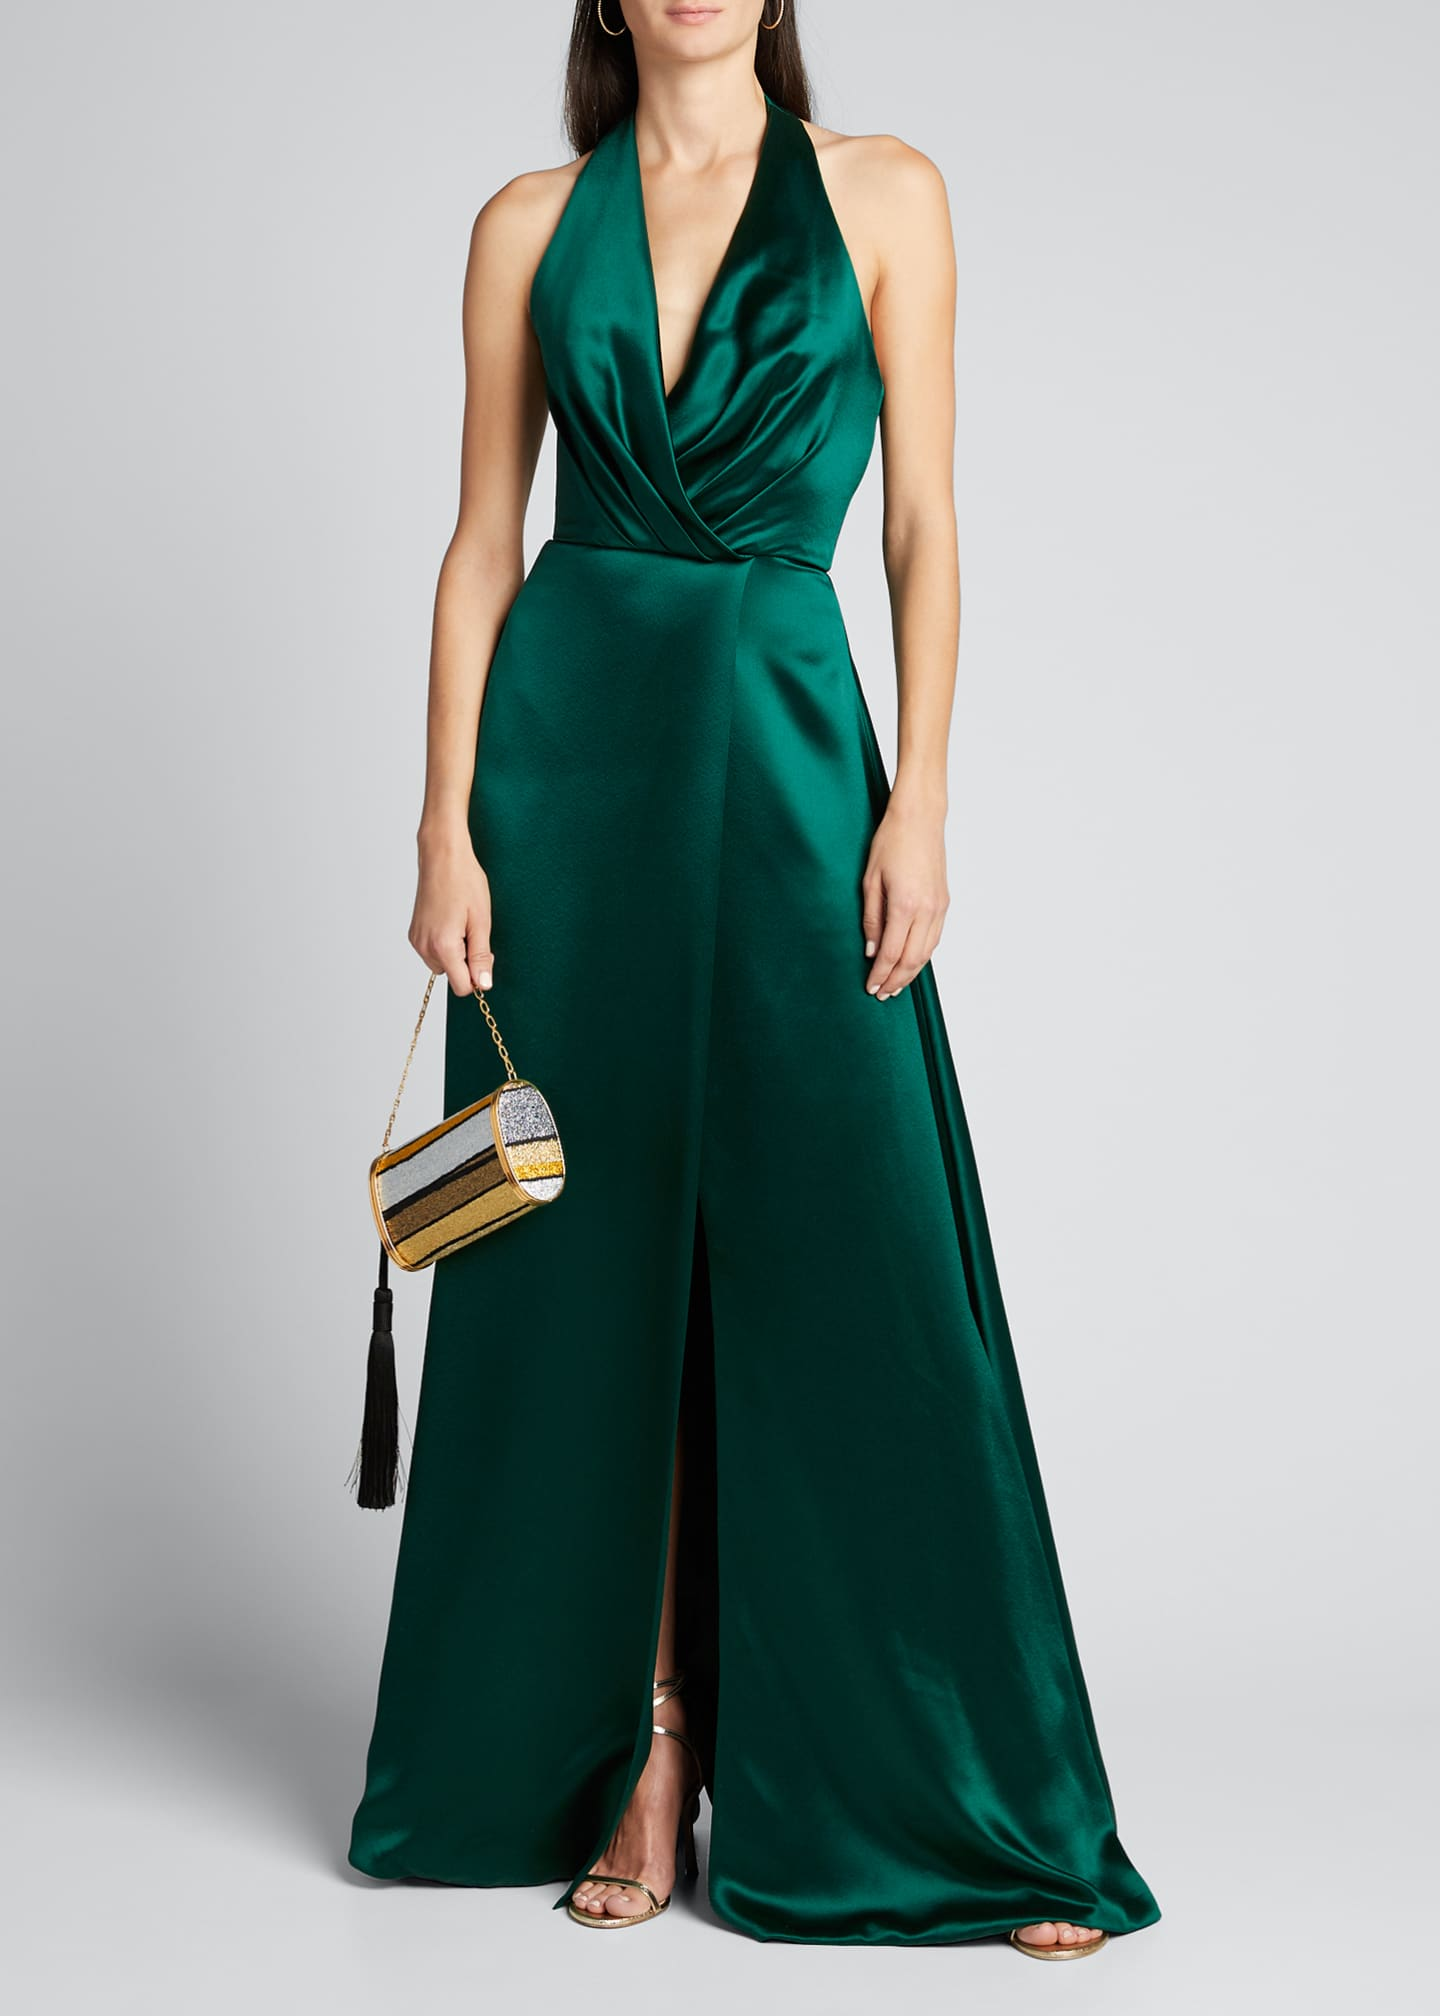 Image 1 of 4: Plunge Front Heavy Charmeuse Satin Halter Gown